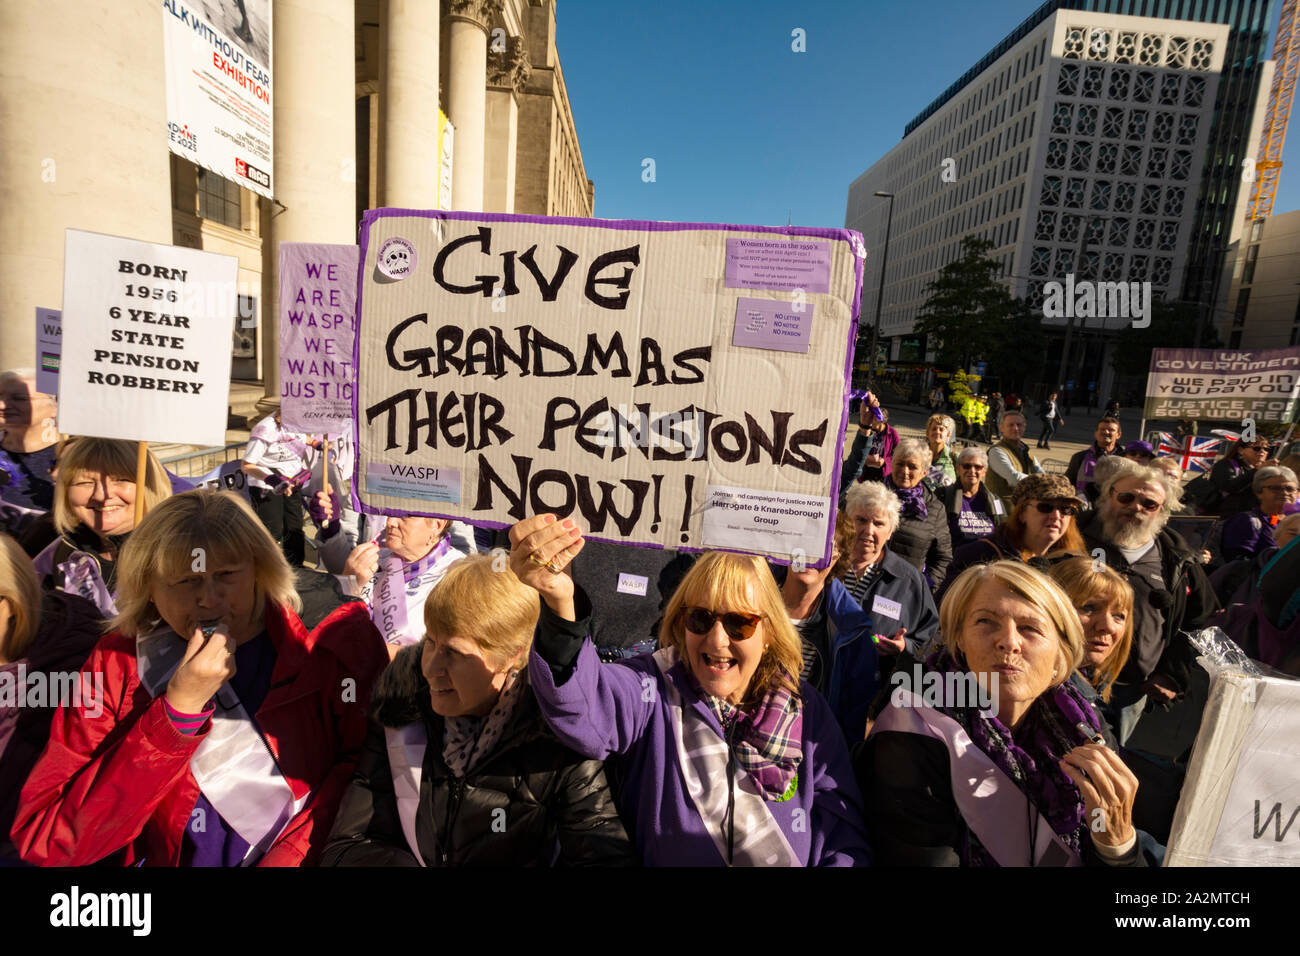 Manchester. October 2019: WASPI - Women Against State Pension Injustice protest at Conservative Conference Stock Photo